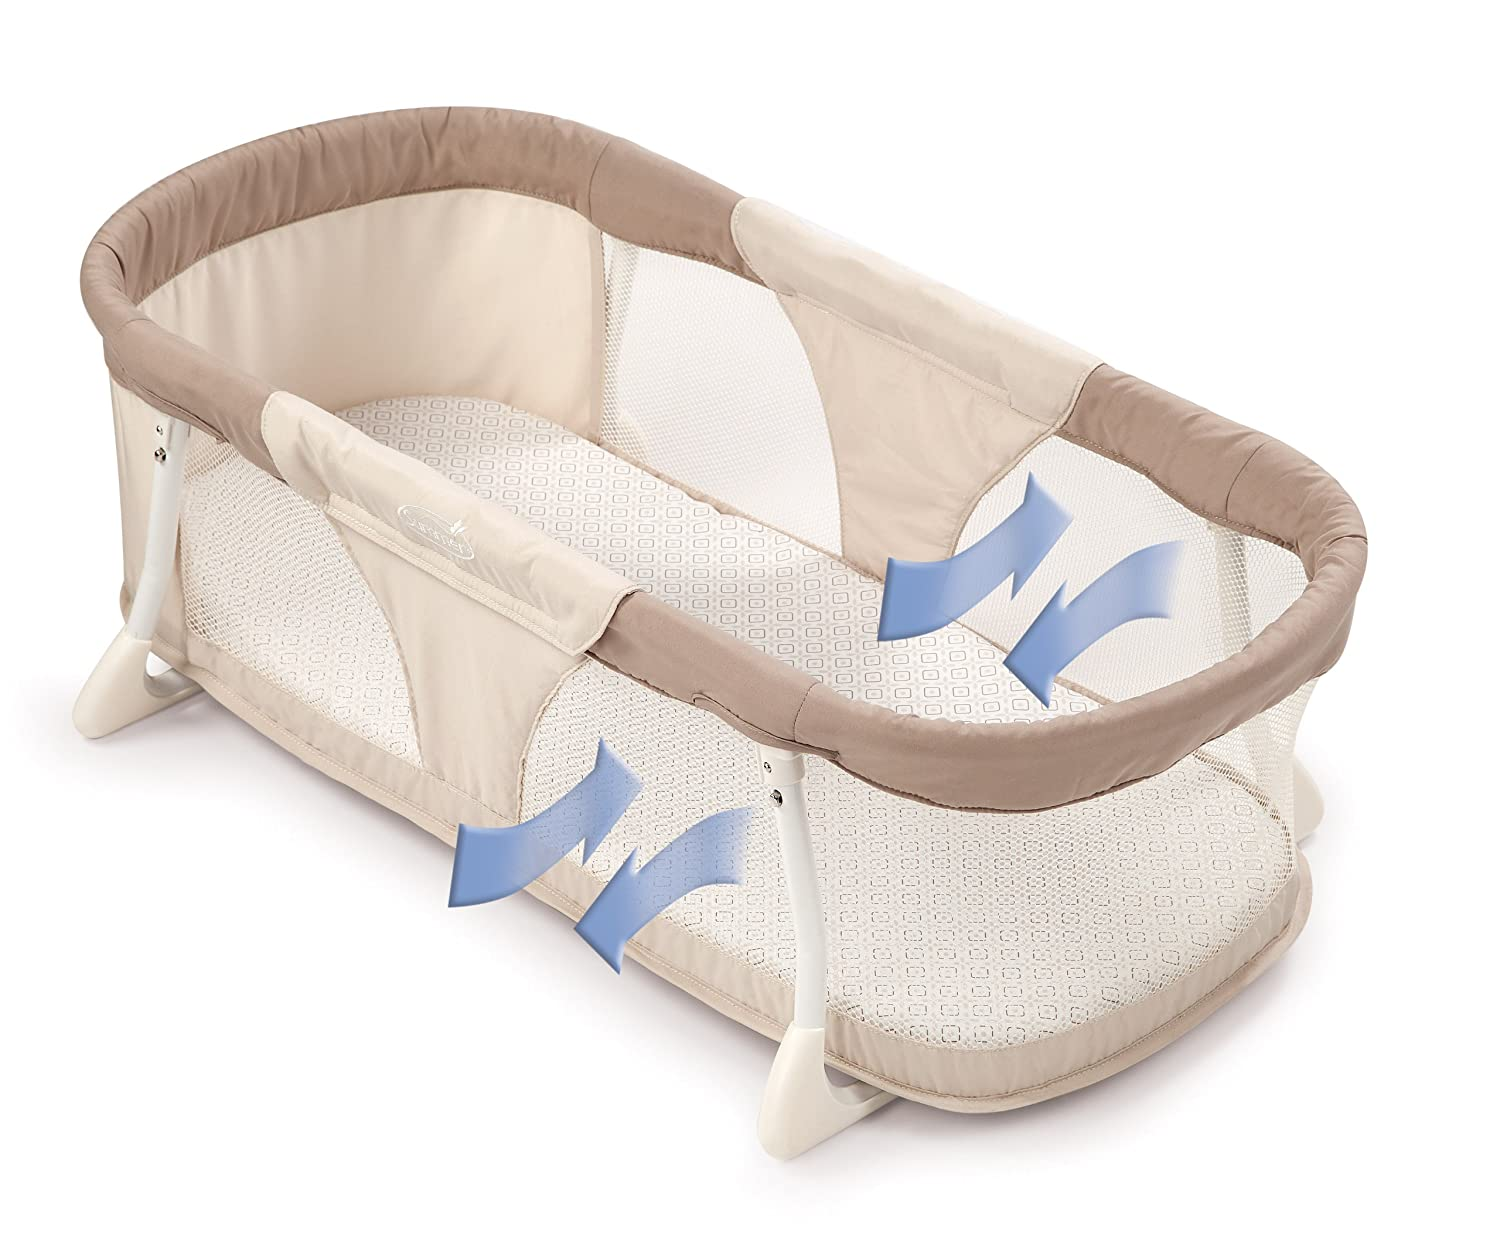 Baby bed pictures - Amazon Com Summer Infant By Your Side Sleeper Discontinued By Manufacturer Portable Bedding Baby